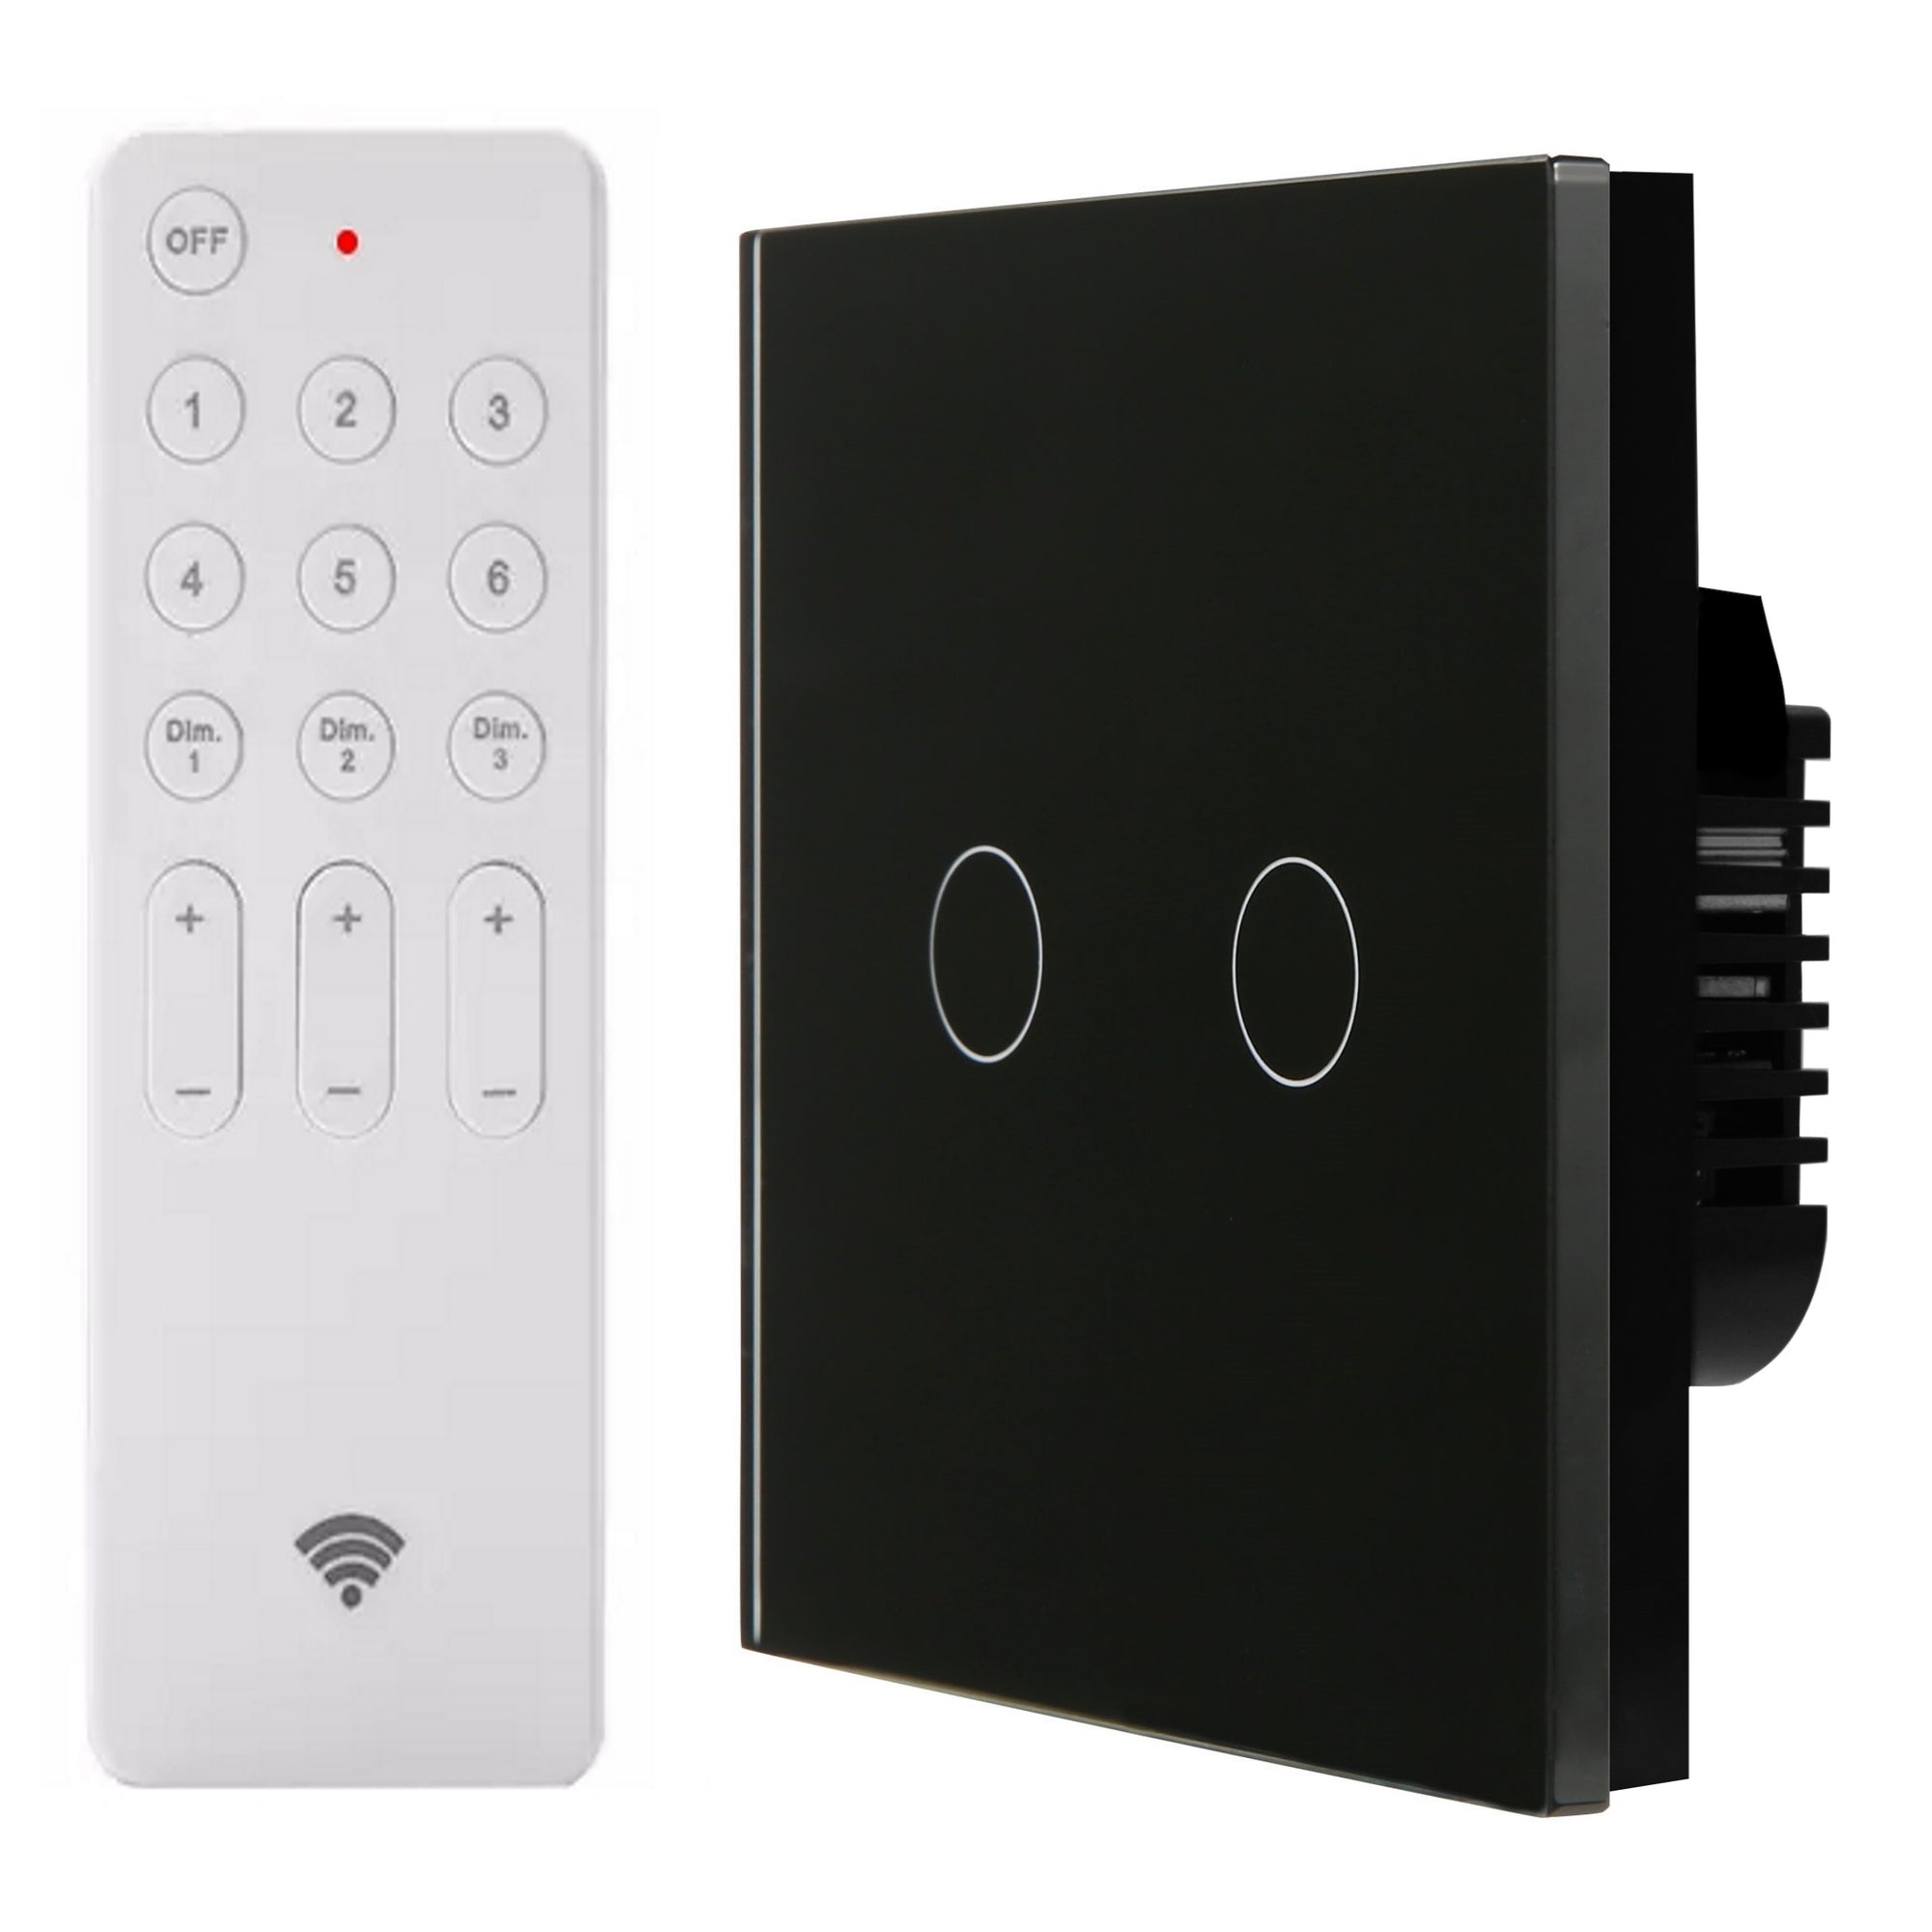 Black Glass Touch Panel Dimmer Light Switch 2 Gang 1 Way with Remote